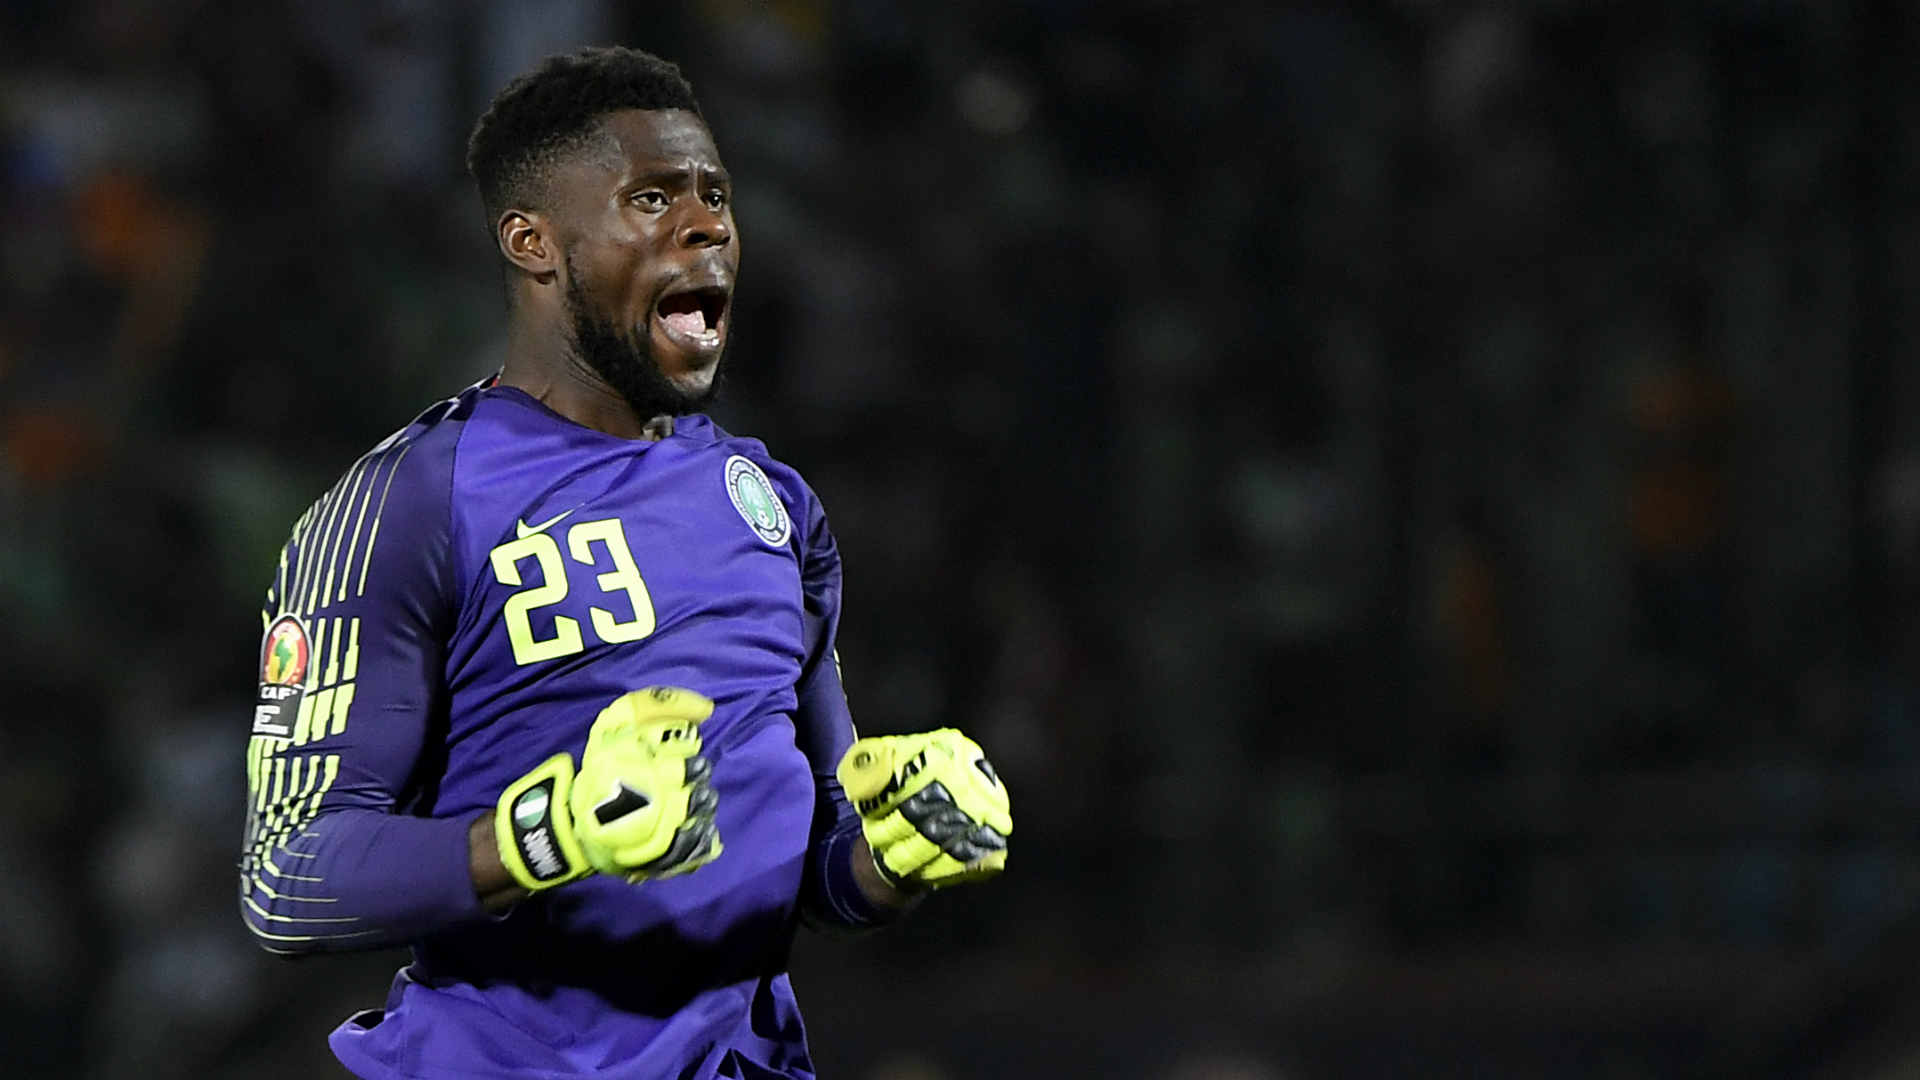 Nigeria goalkeeper Uzoho grateful after successful knee surgery